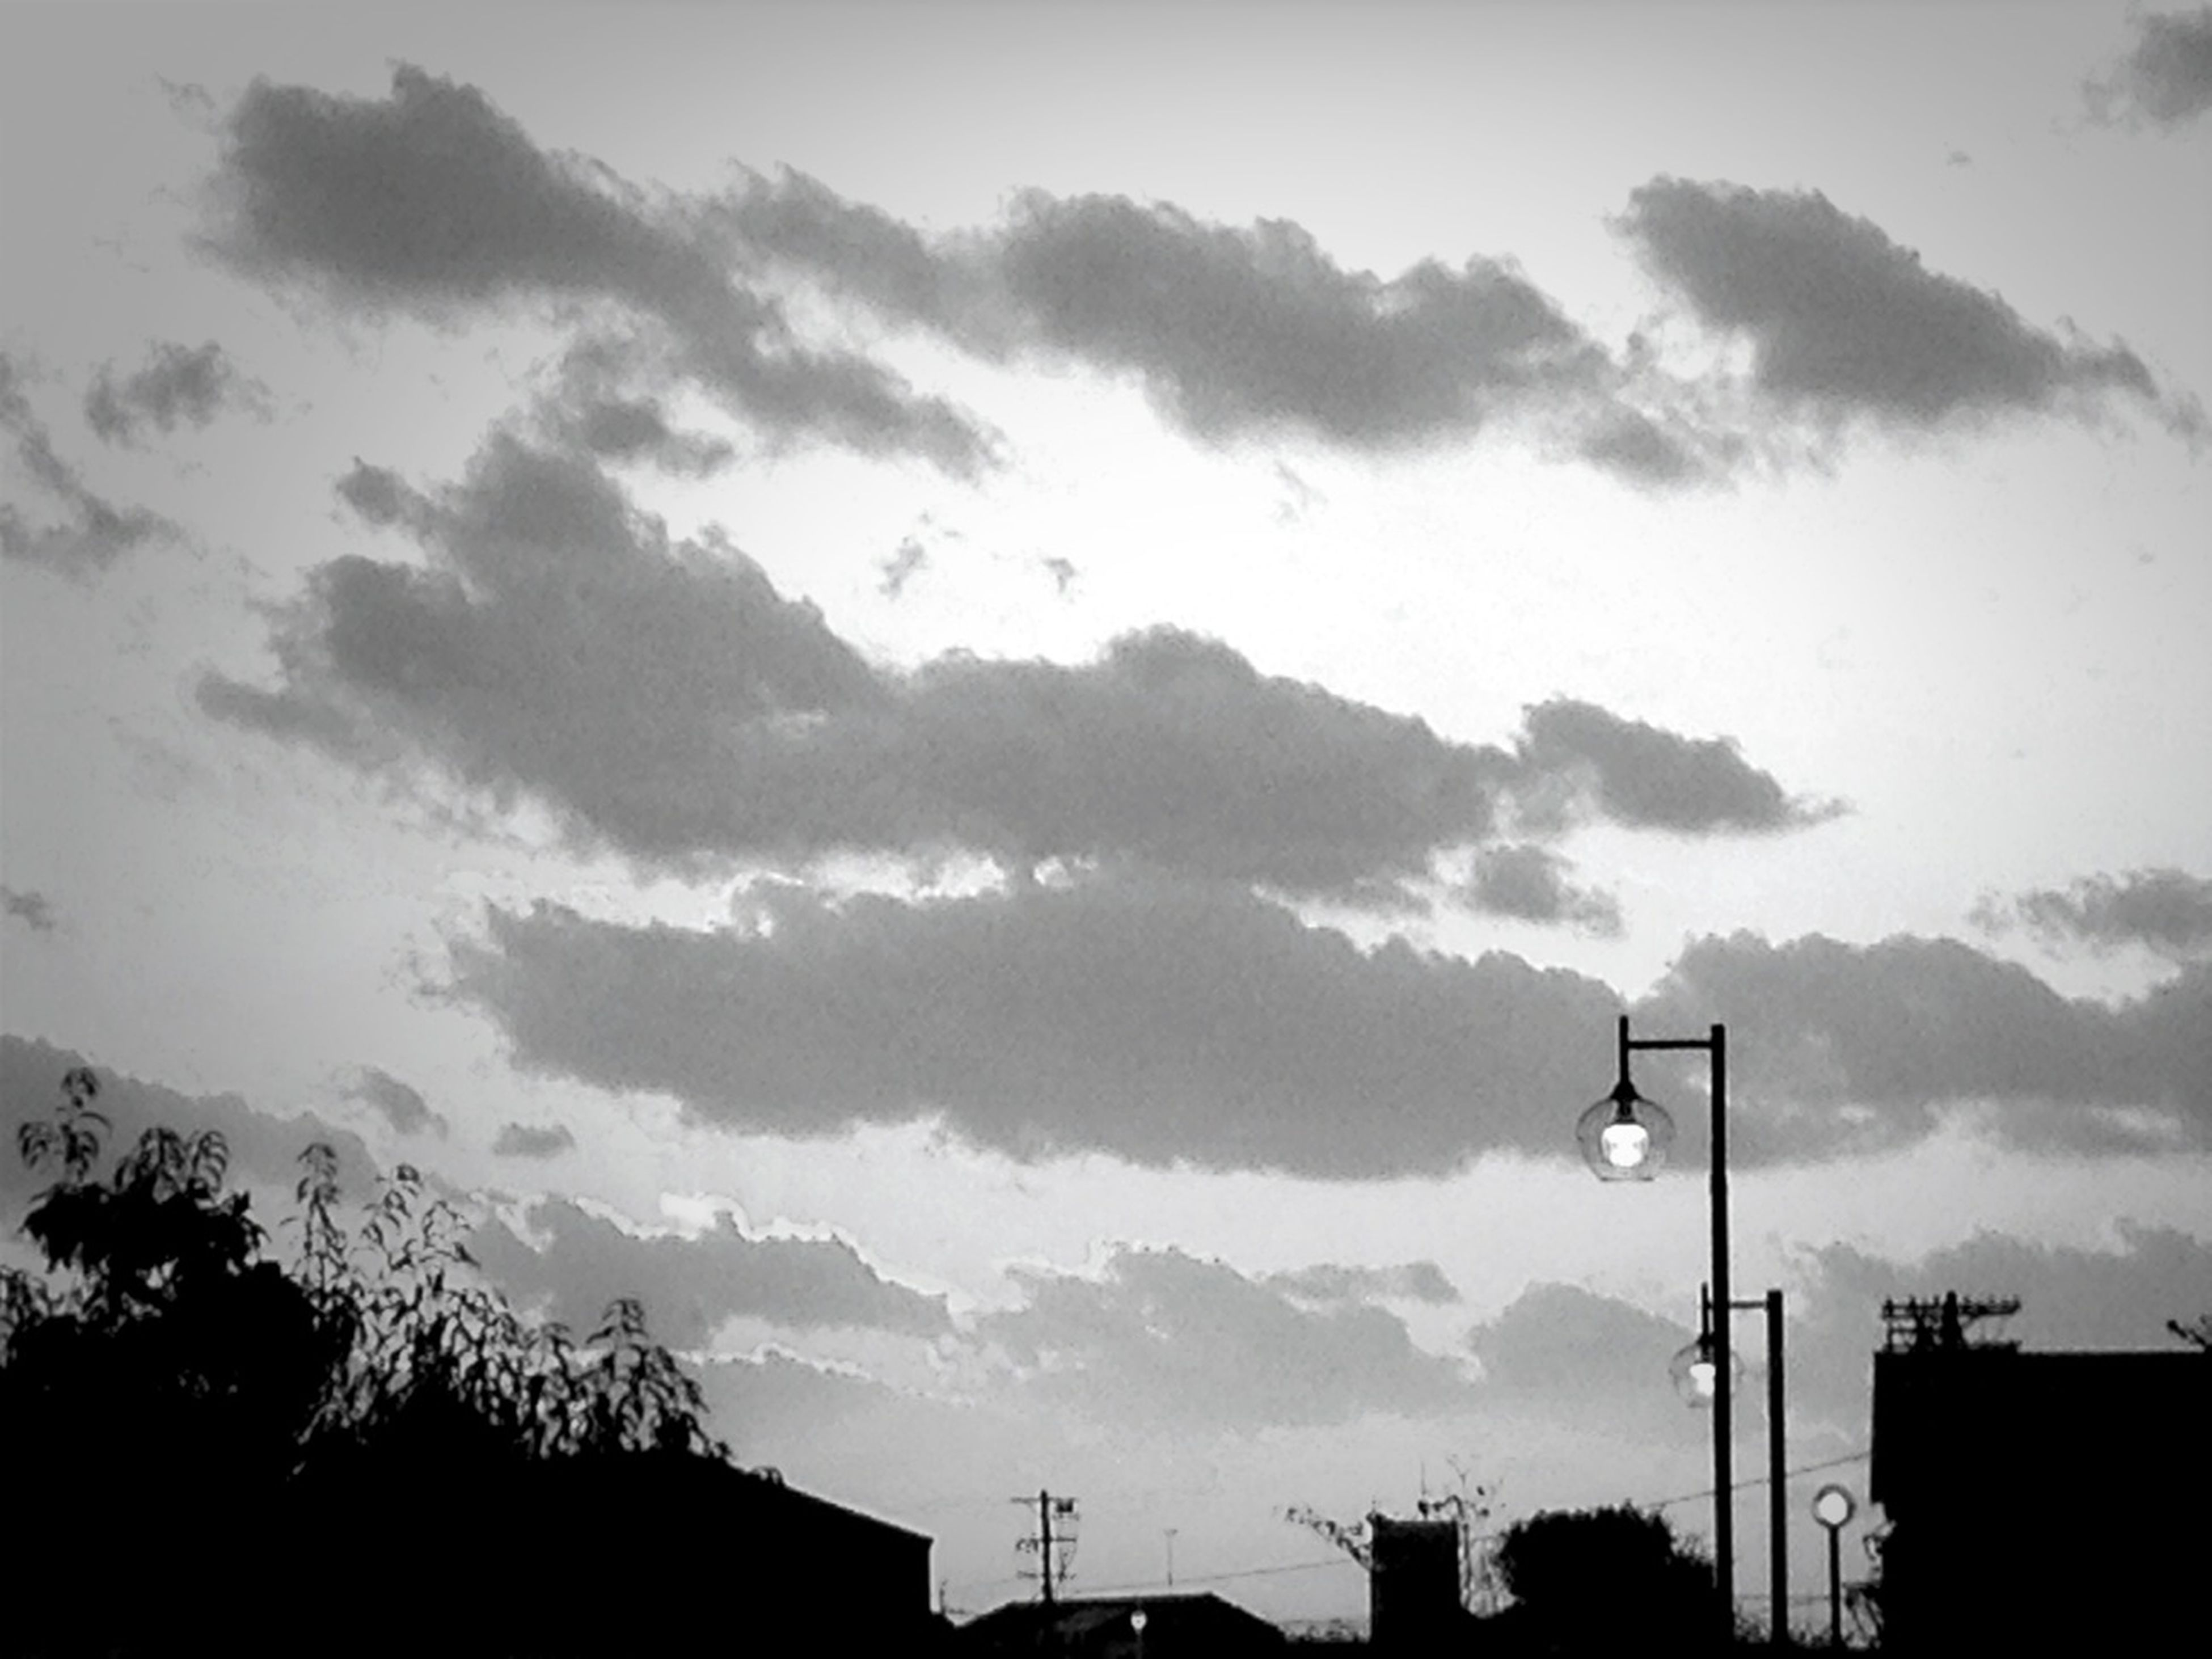 sky, silhouette, low angle view, building exterior, built structure, architecture, cloud - sky, cloudy, cloud, tree, high section, nature, weather, dusk, building, outdoors, overcast, beauty in nature, house, no people